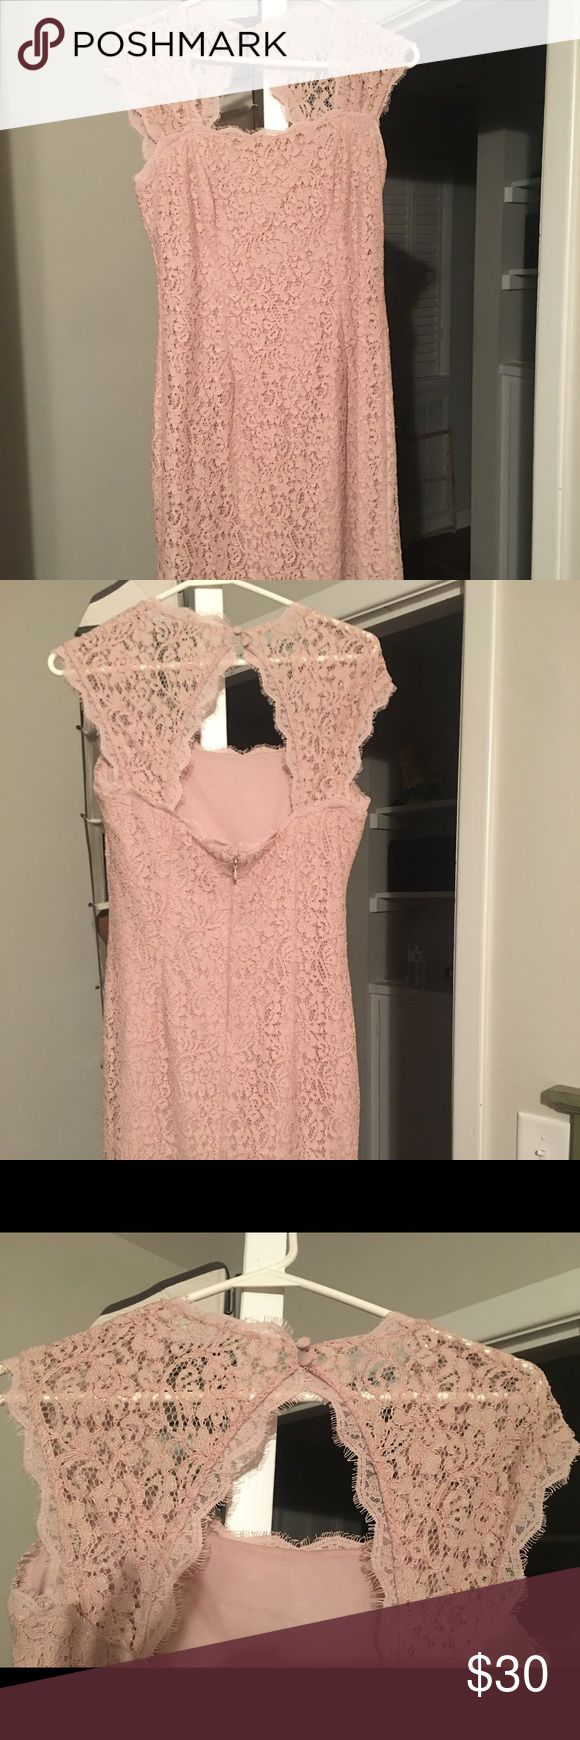 Beige lace dress Worn once to a wedding. Great condition. Dresses Midi